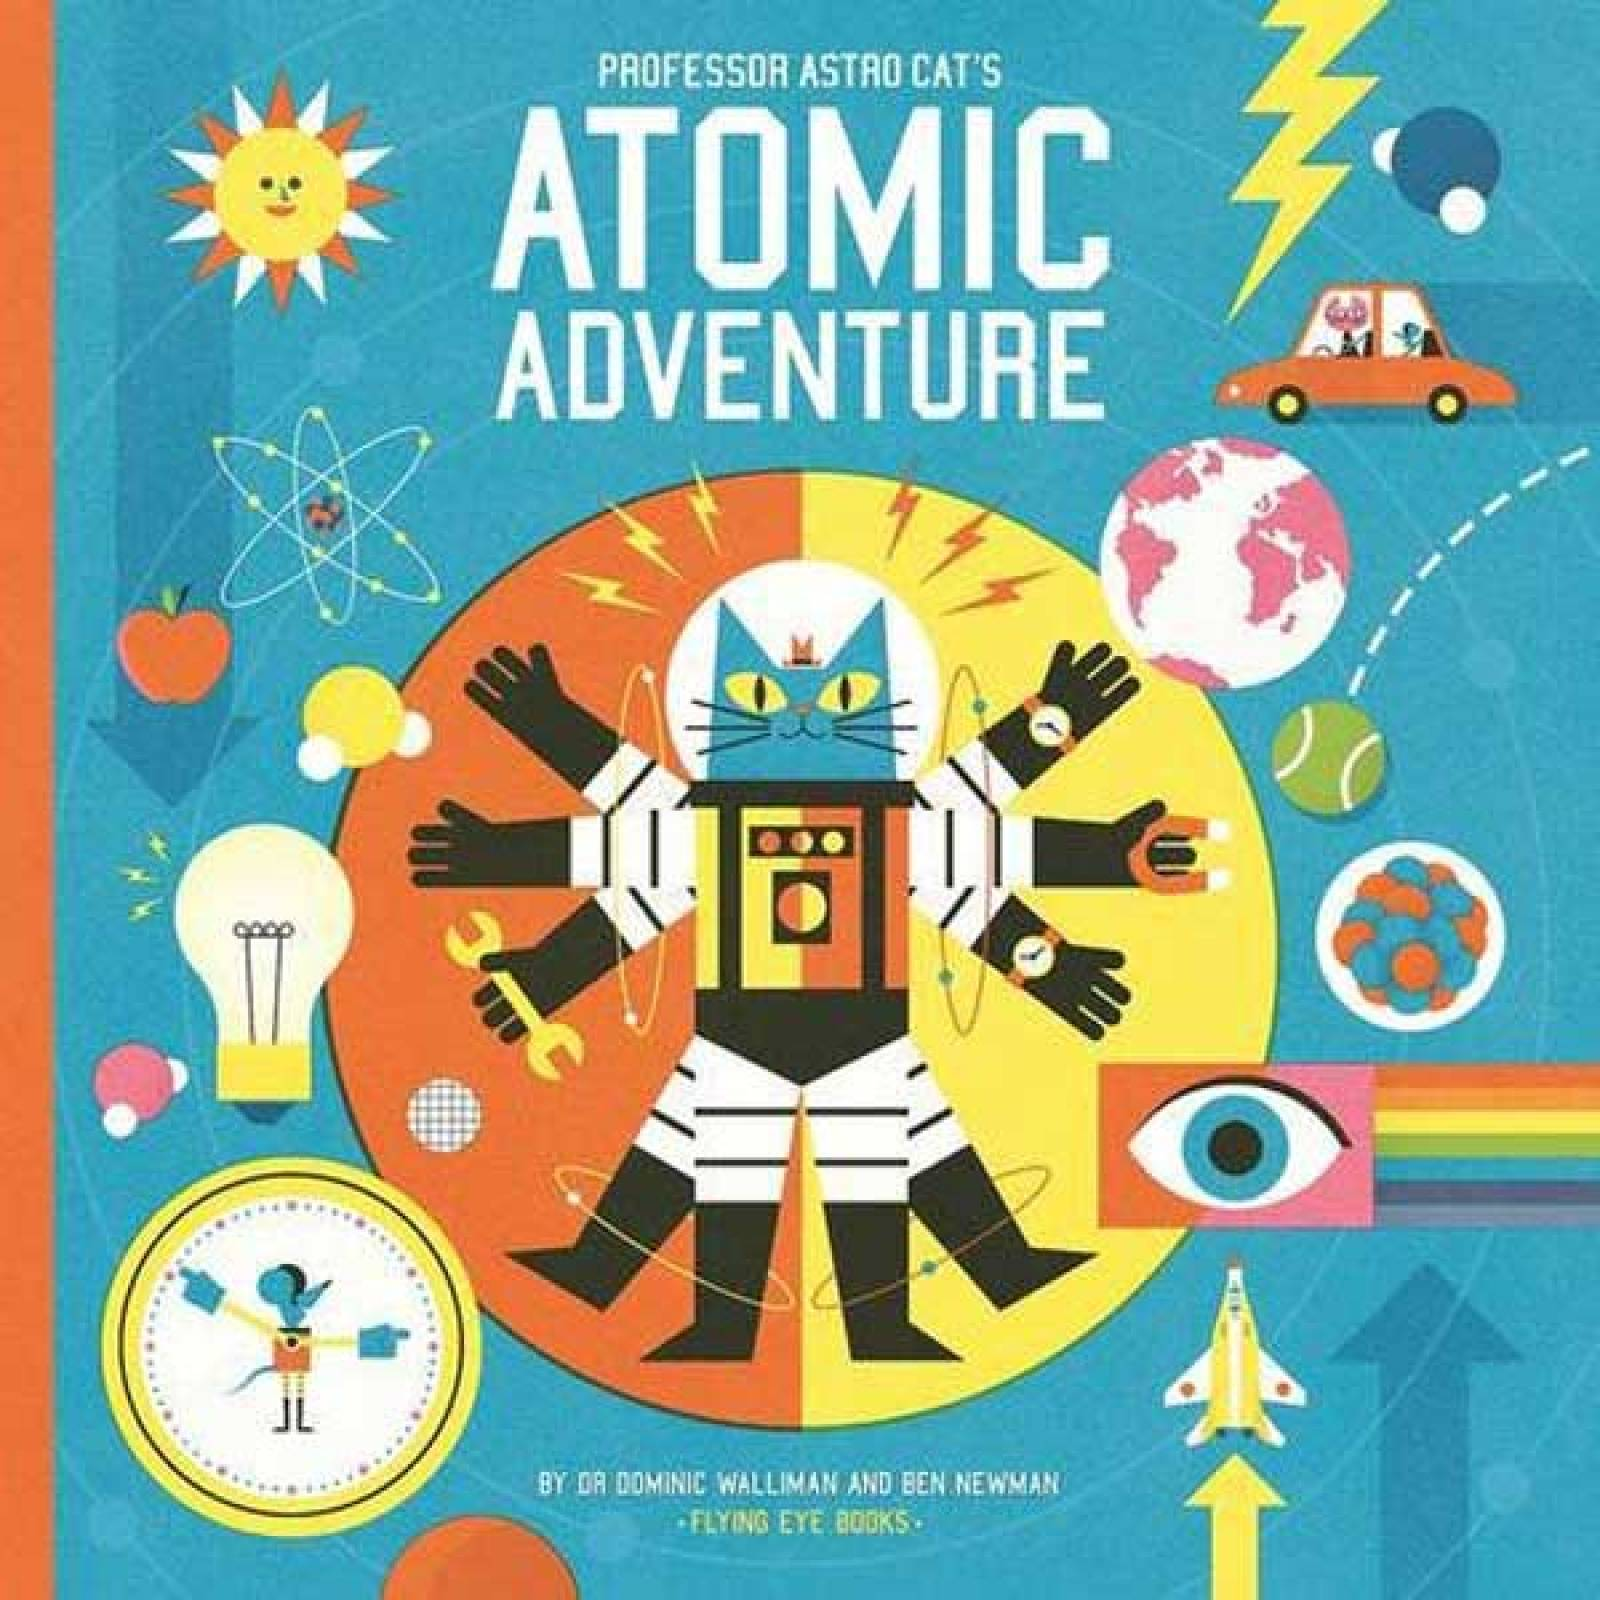 Professor Astro Cat's Atomic Adventure Hardback Book thumbnails